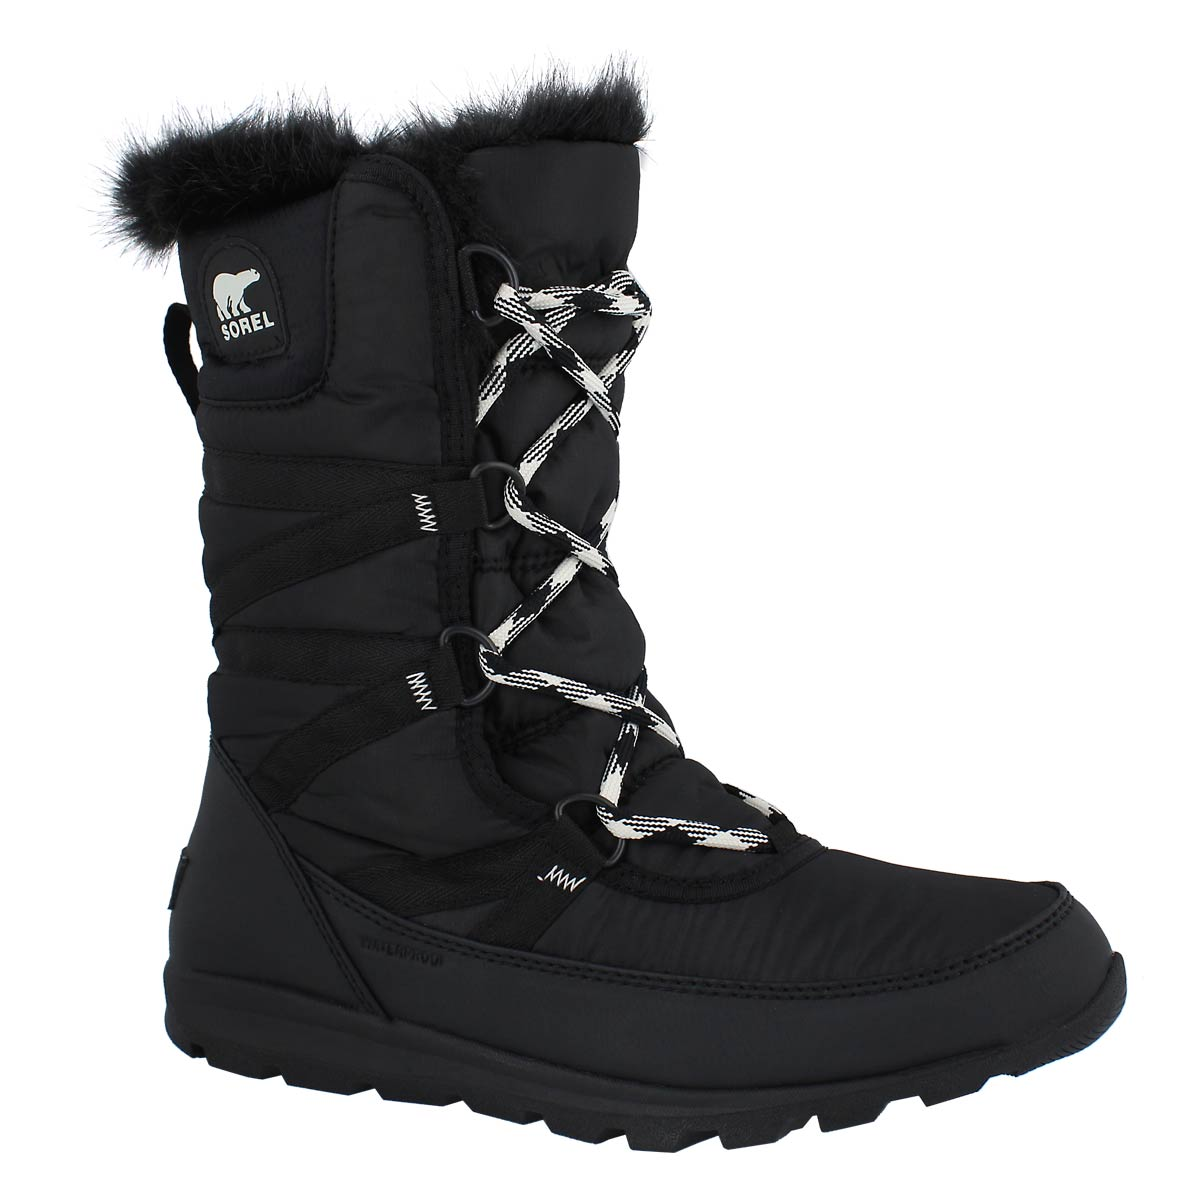 Lds Whitney Tall Lace II bk wp wntr boot